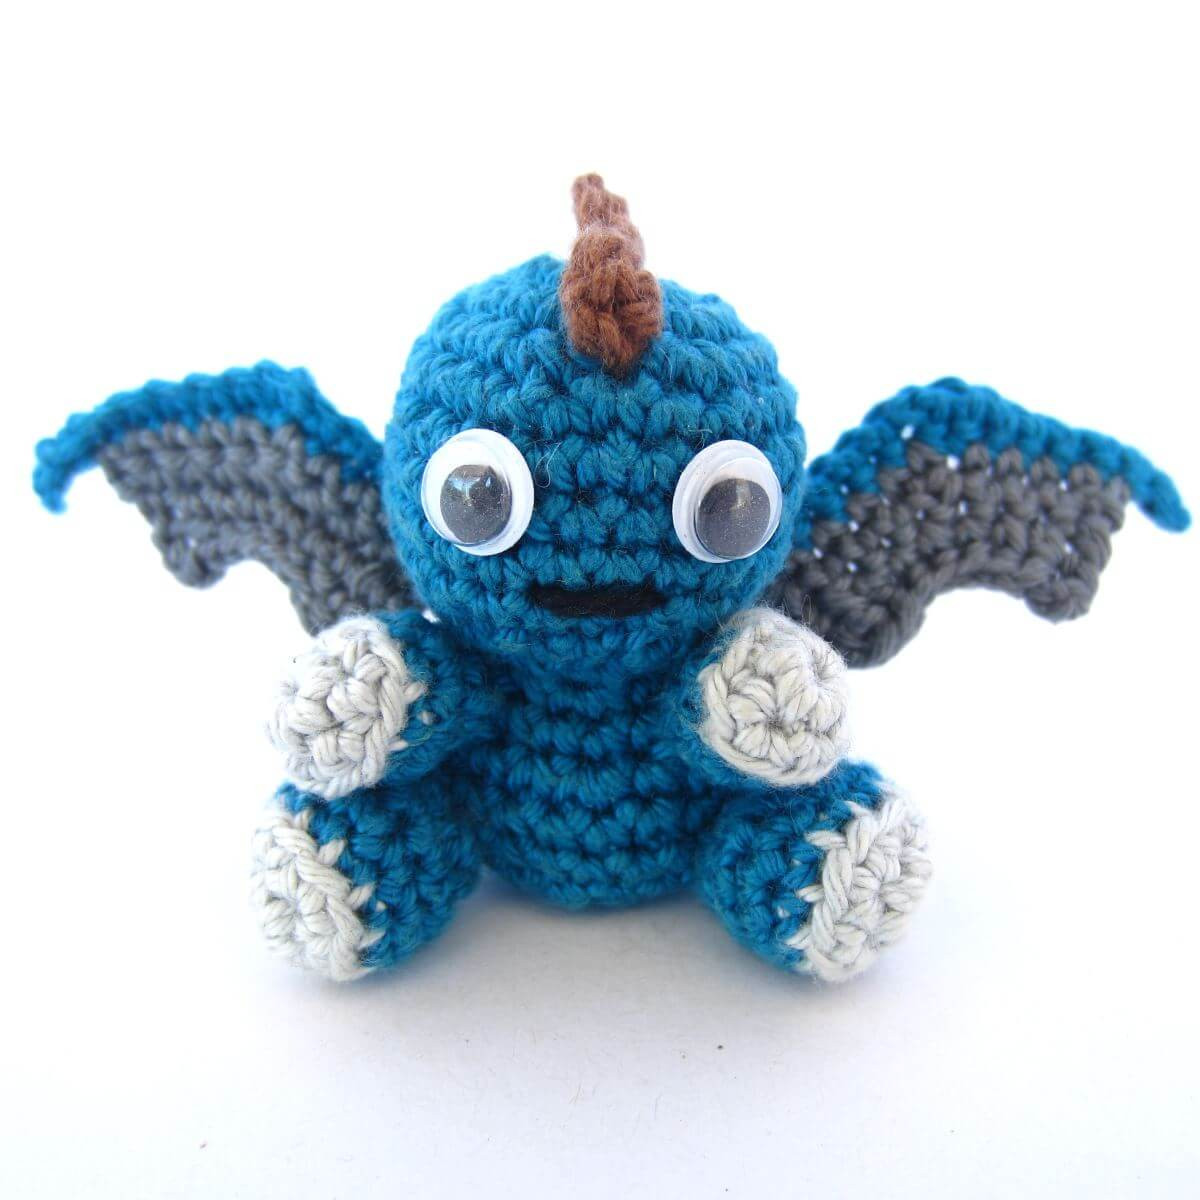 Luxury Amigurumi Crochet Dragon Pattern Supergurumi Crochet Dragon Pattern Of Brilliant 50 Pictures Crochet Dragon Pattern